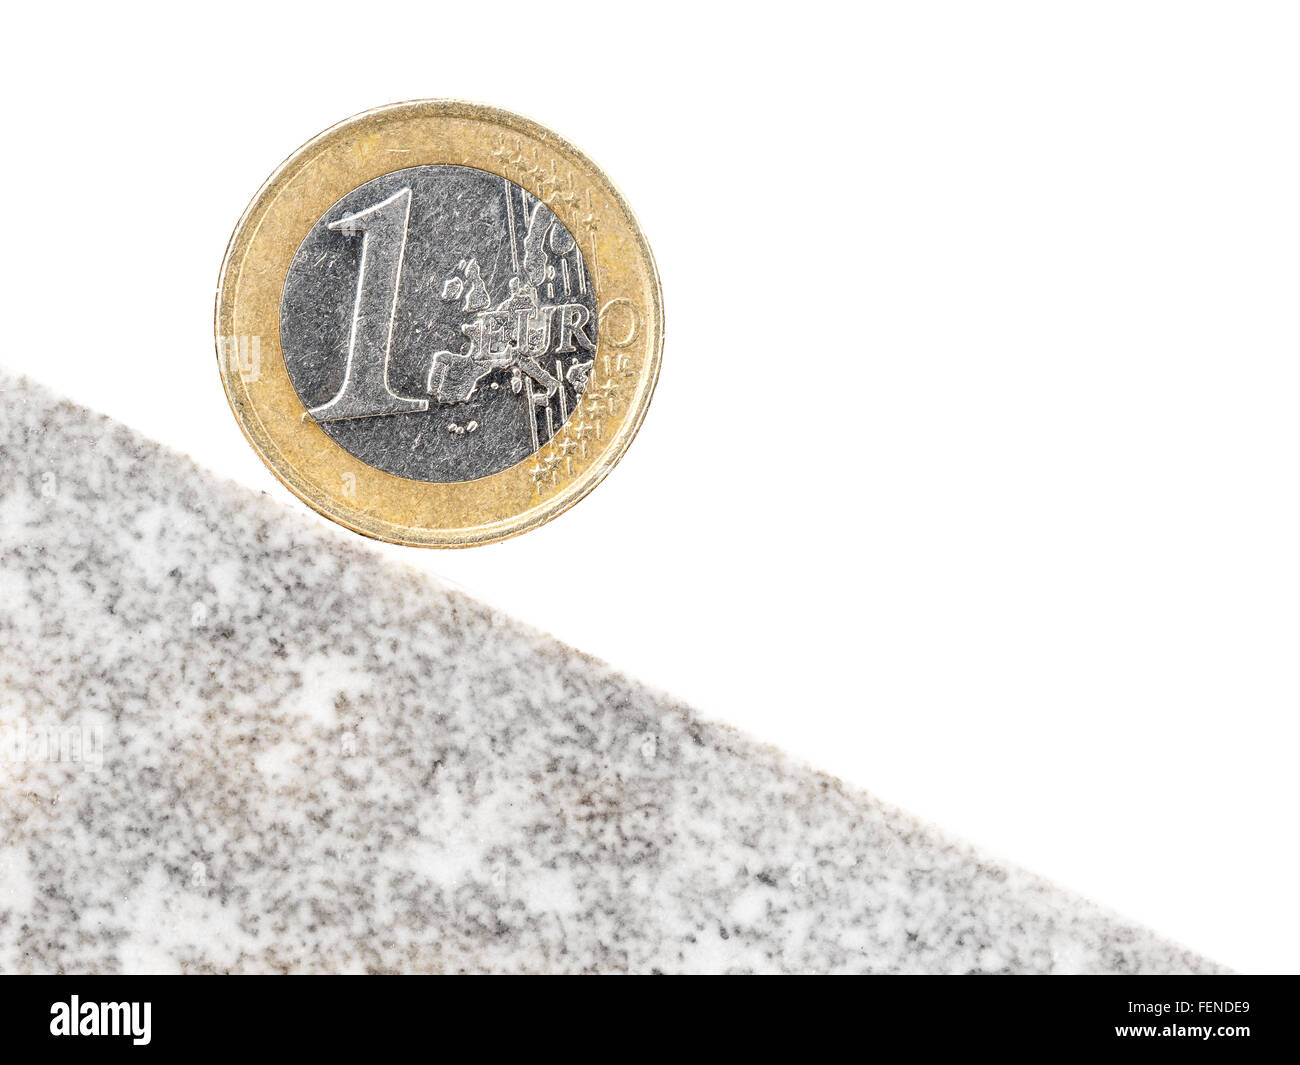 One Euro coin on inclined plane as a metaphor of currency crash - Stock Image